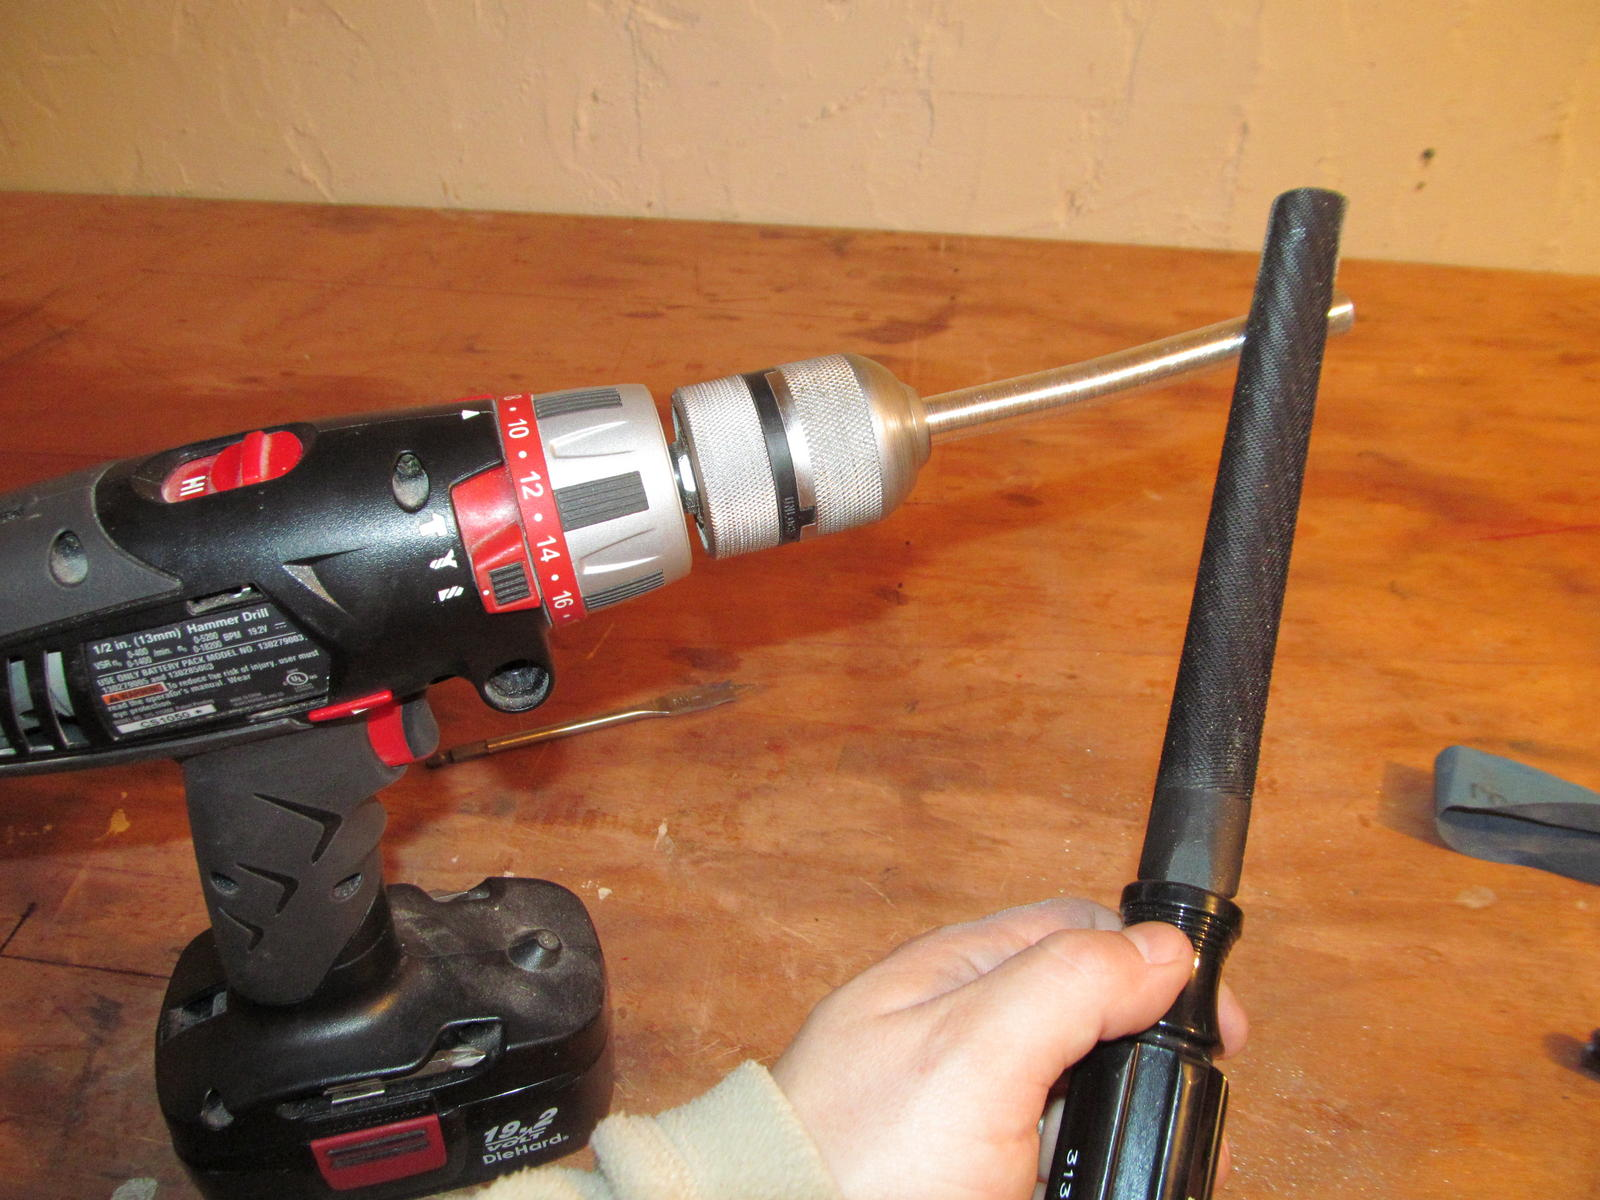 I start by chucking the joiner in my drill and using a metal file to remove material quickly.